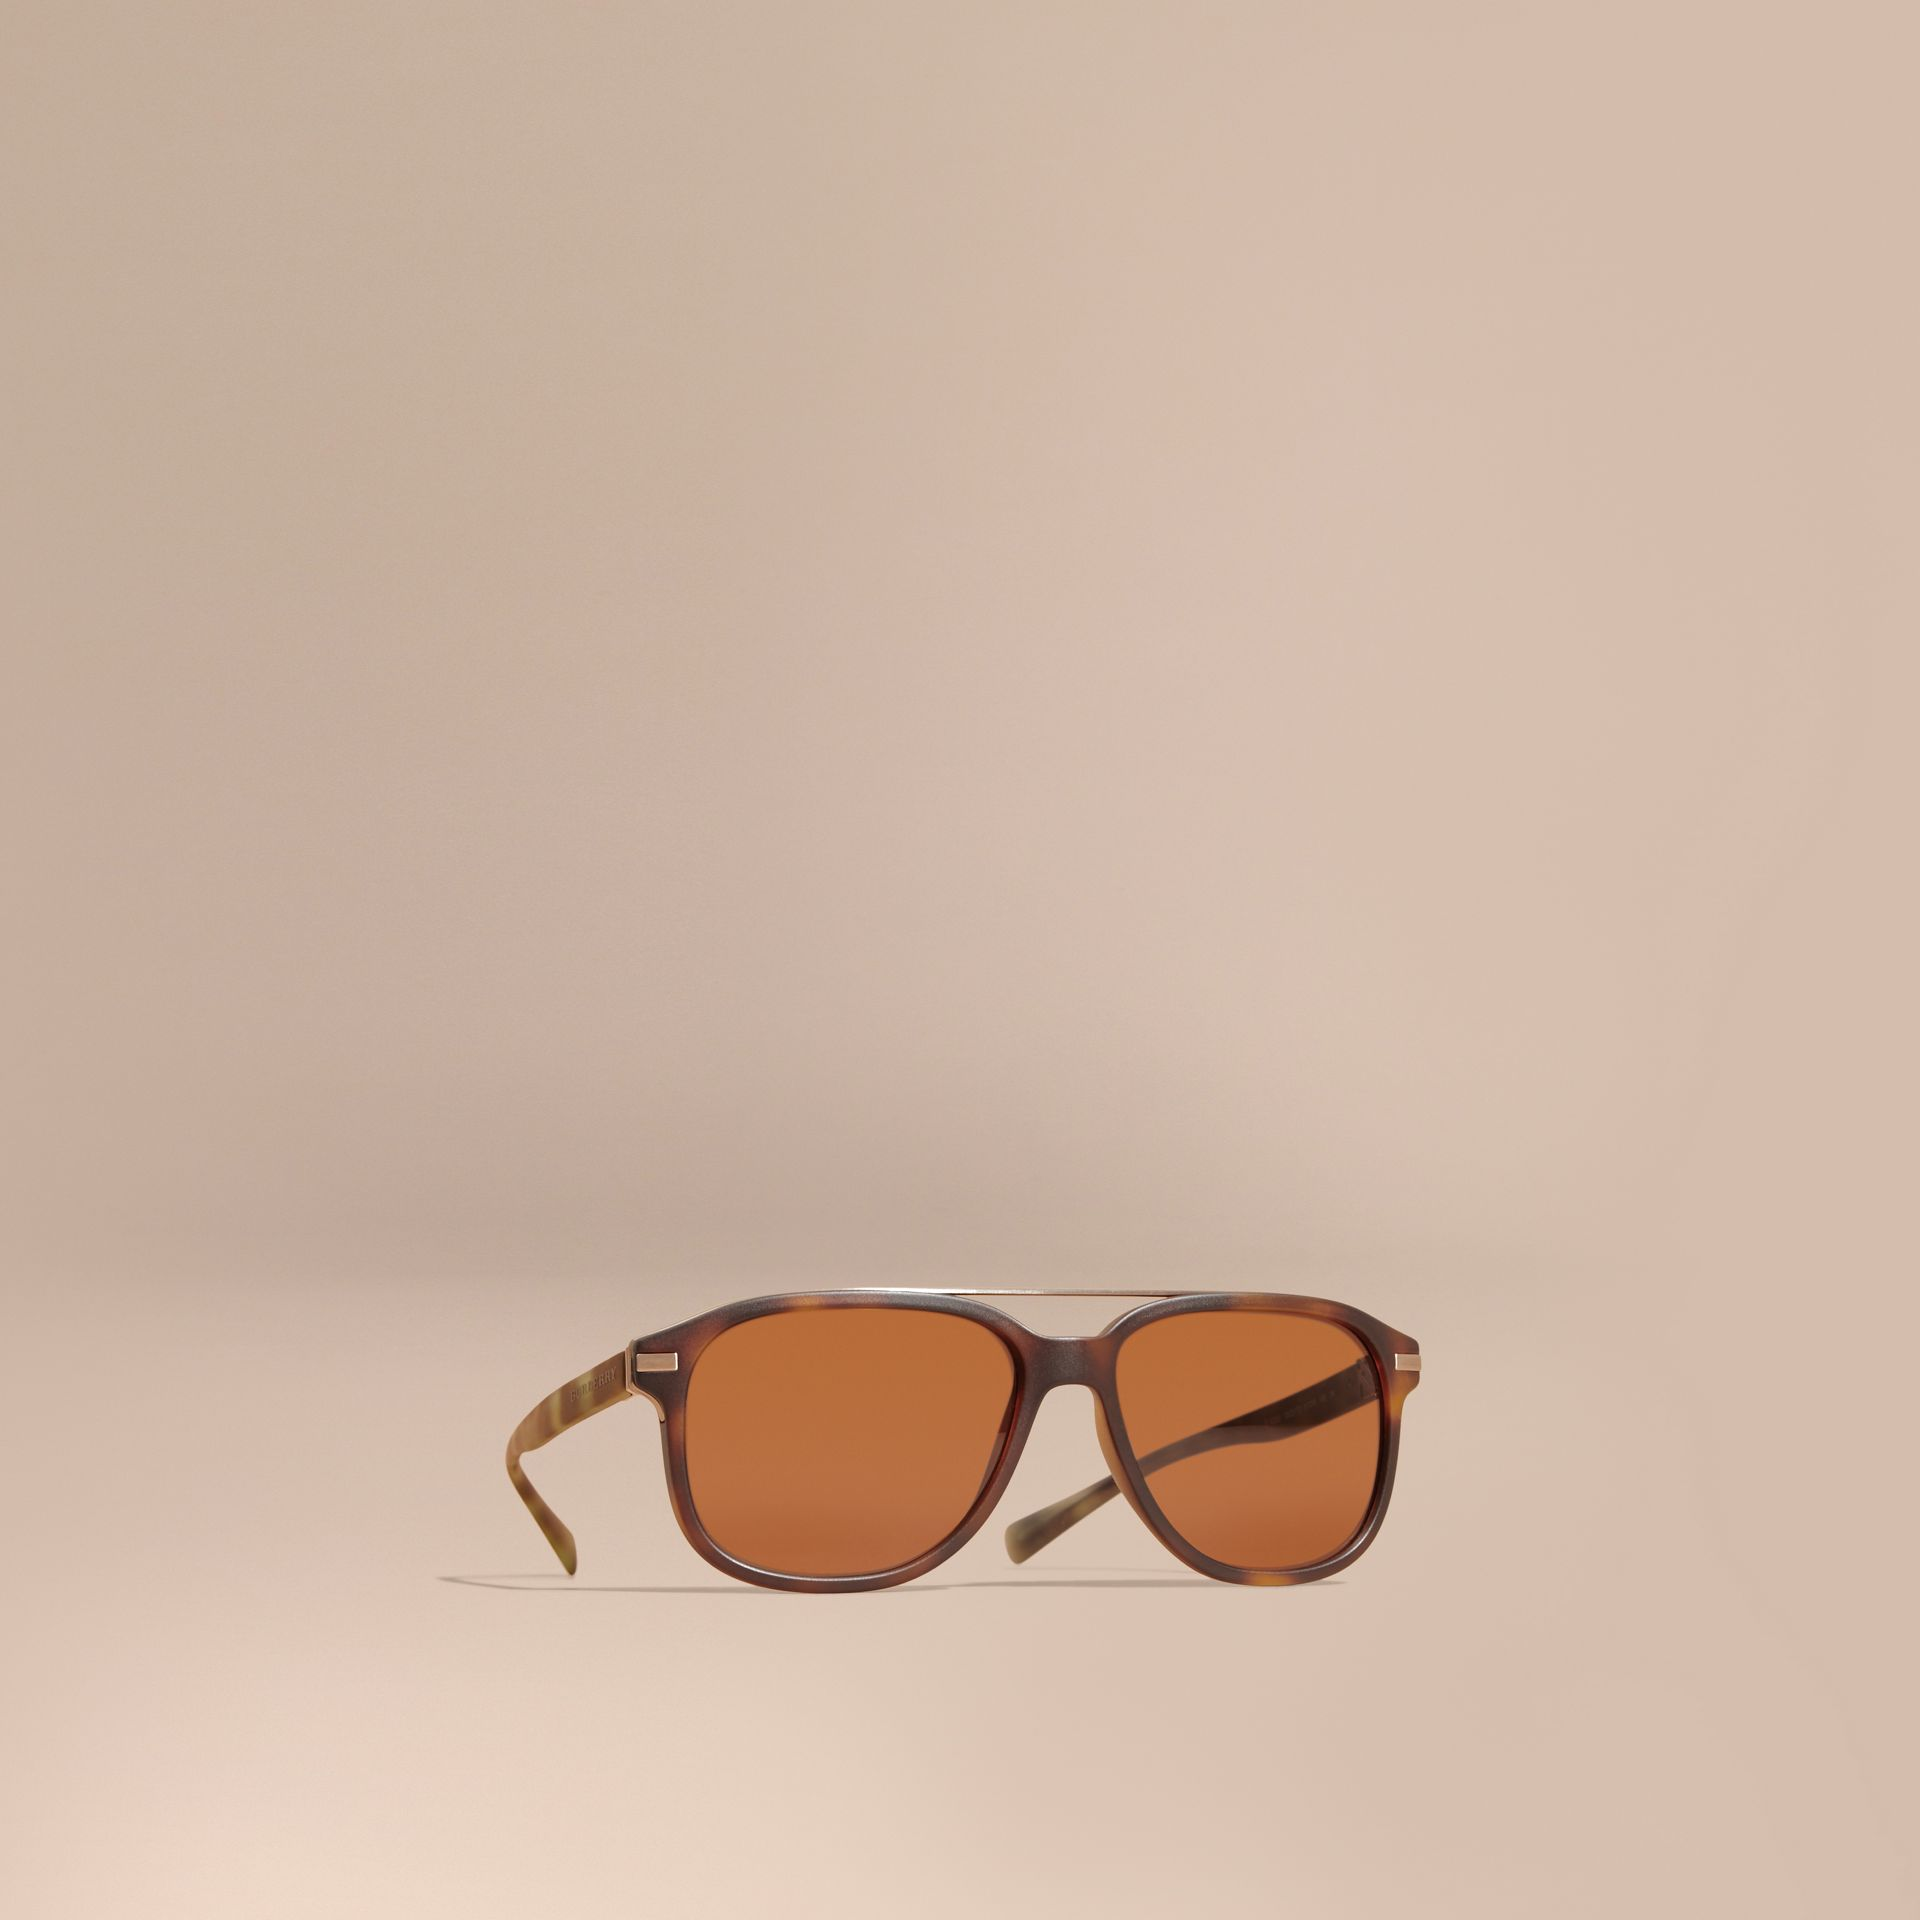 Square Frame Sunglasses in Tortoise Shell - gallery image 1